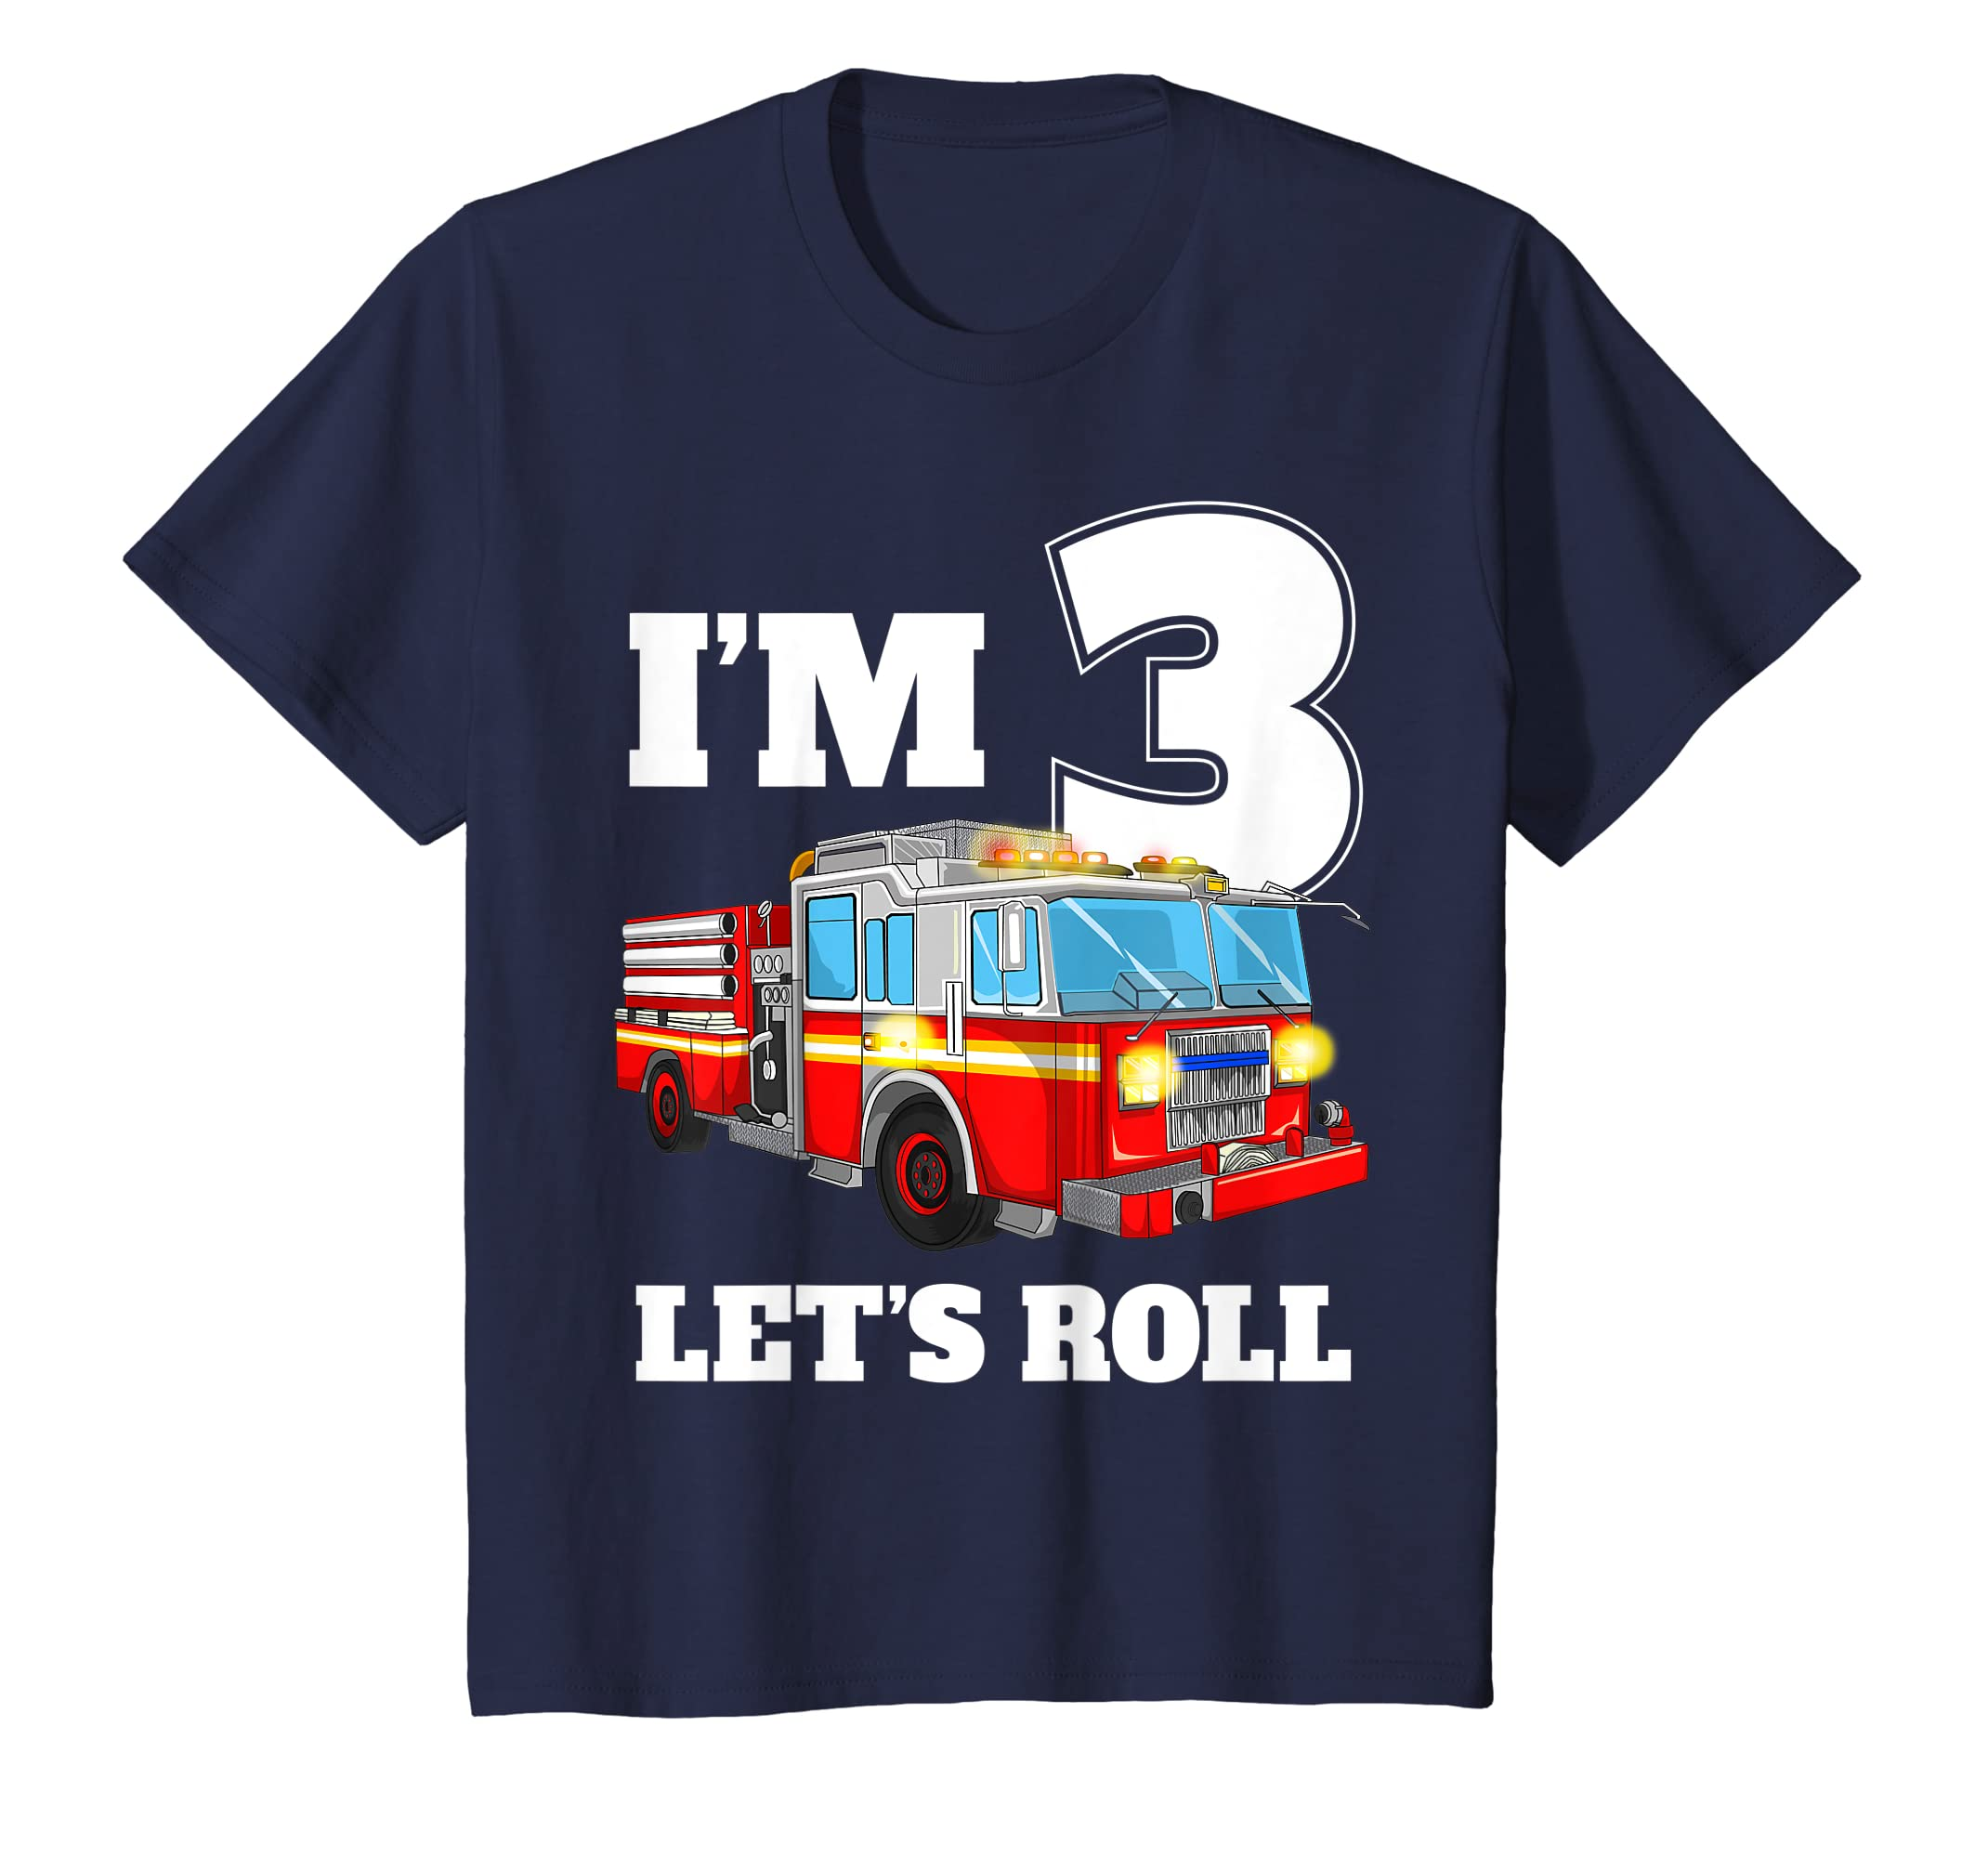 3474c80ba56 Amazon.com: Kids Fire Truck 3rd Birthday T Shirt Boy Toddler Firefighter  Tee: Clothing